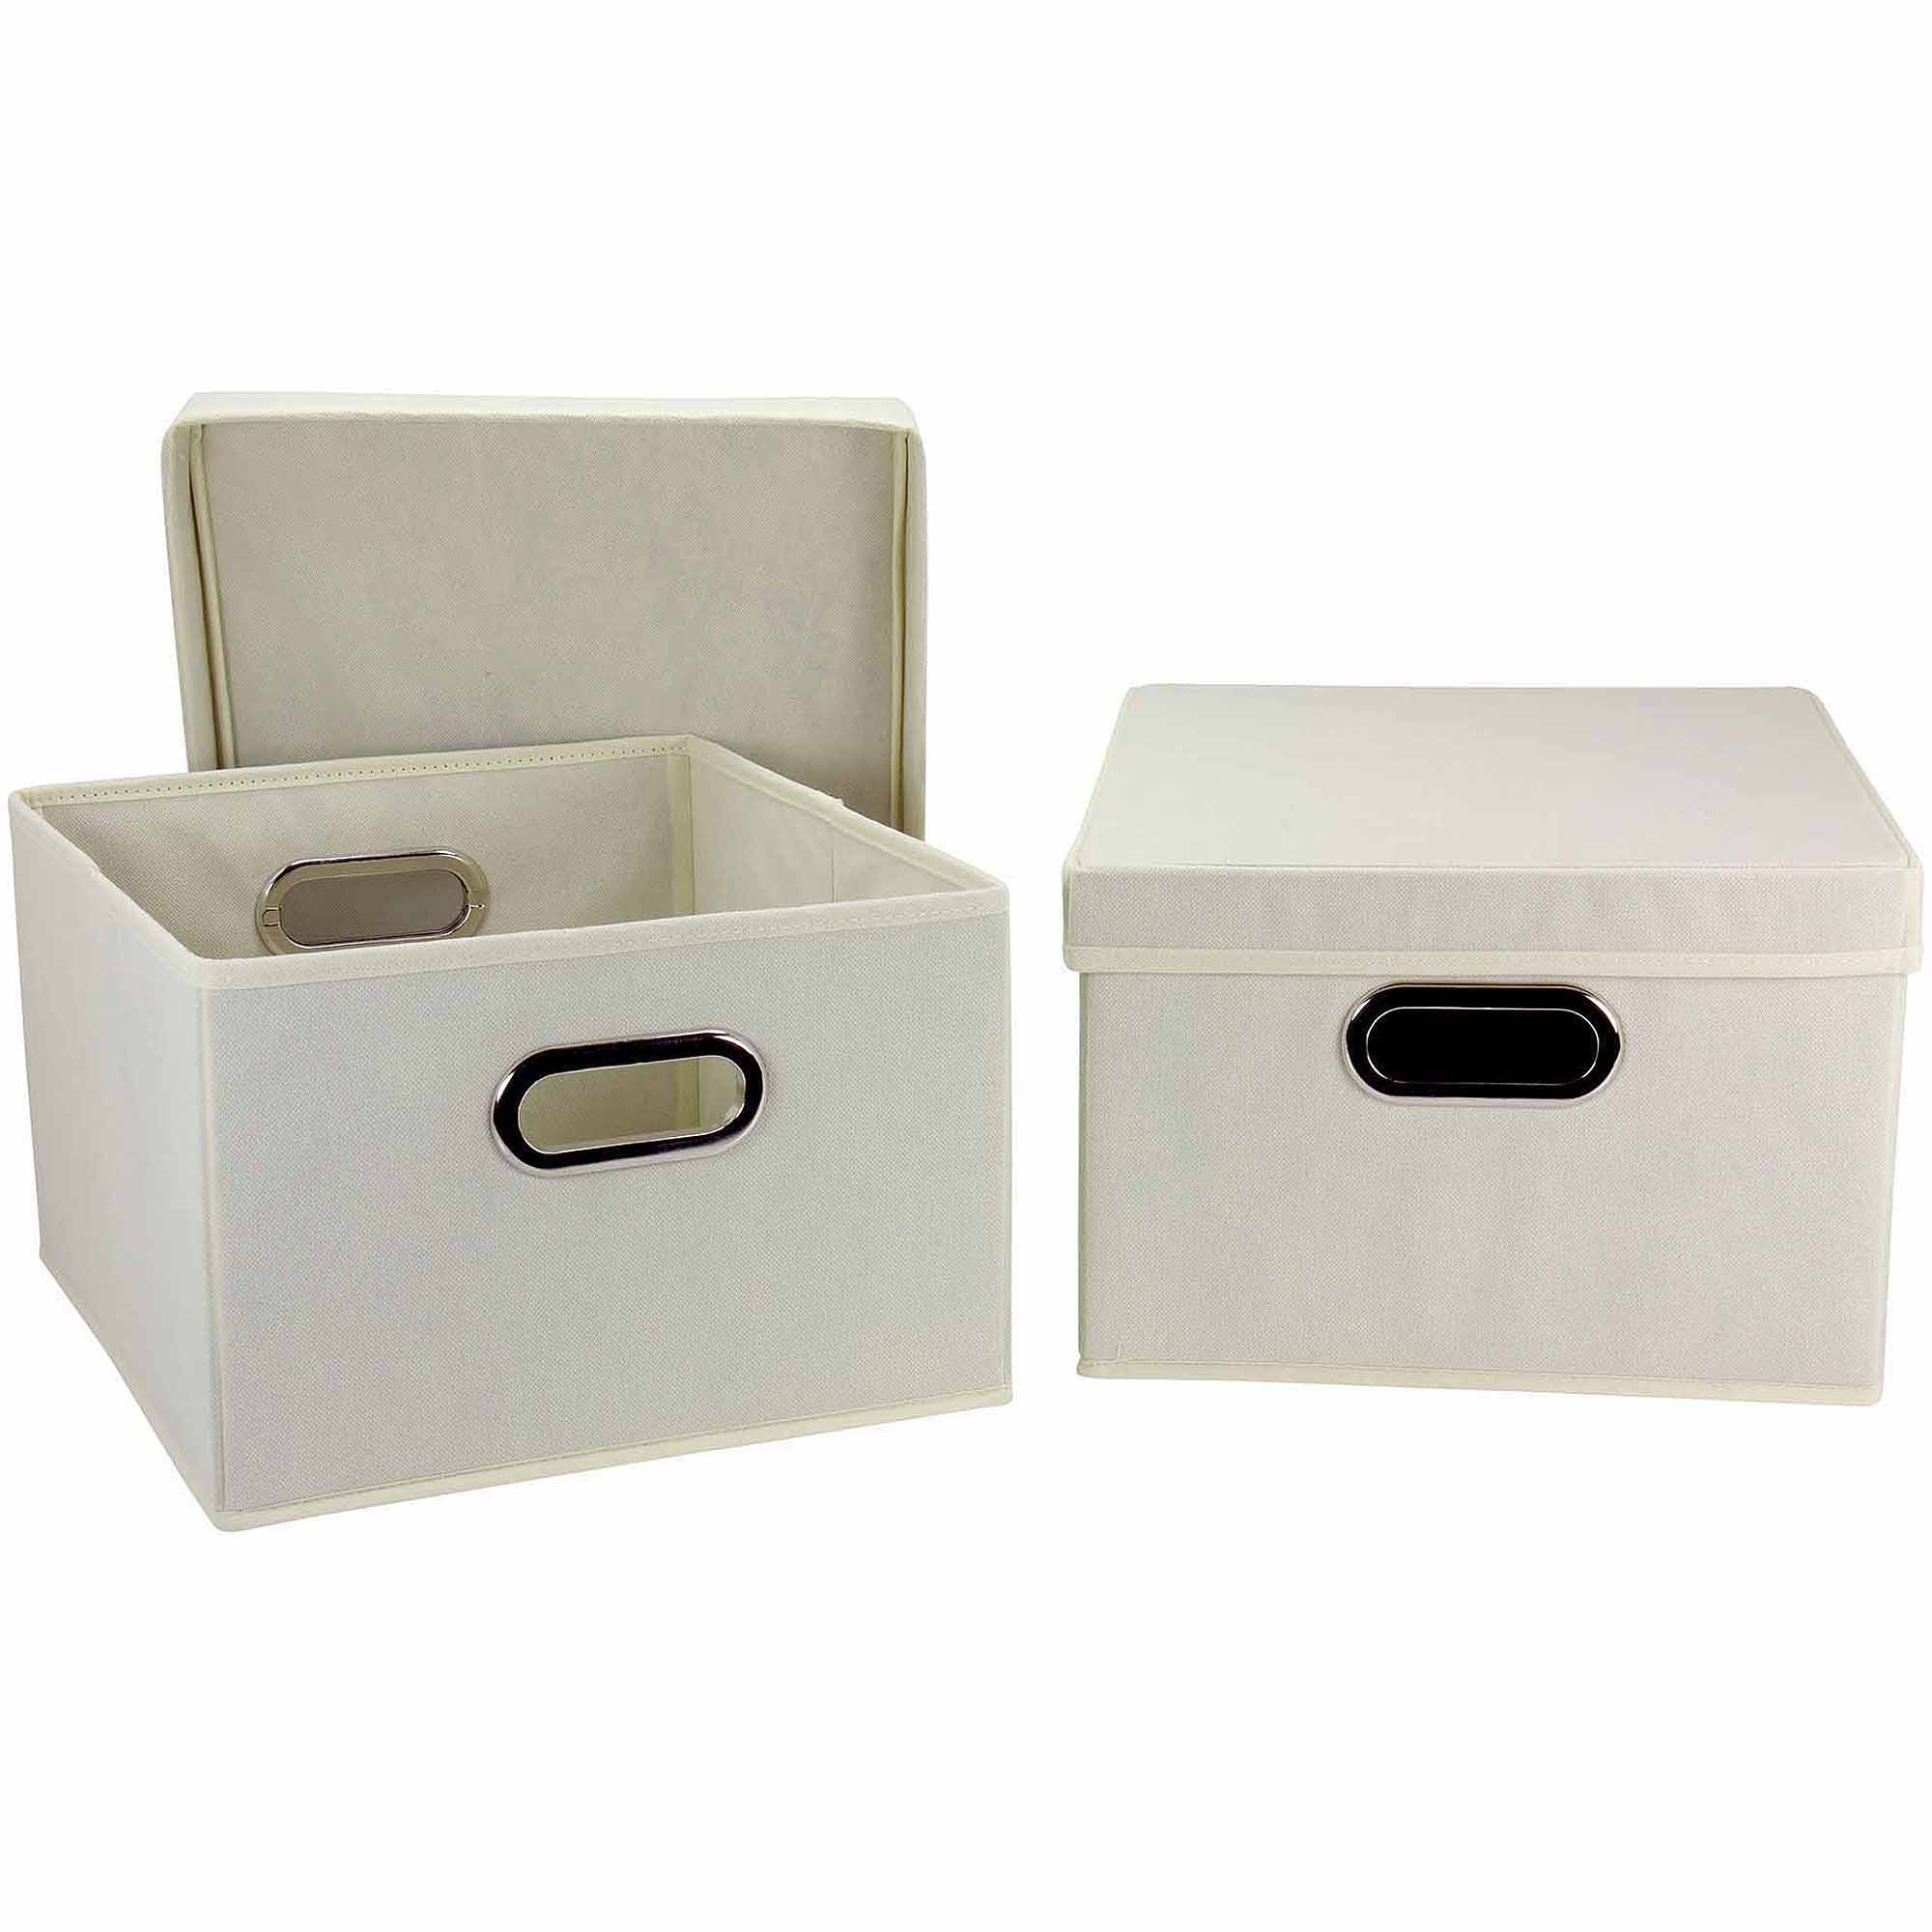 Delicieux Household Essentials Collapsible Box With Lid And Built In Grommet Handles,  Natural   Walmart.com